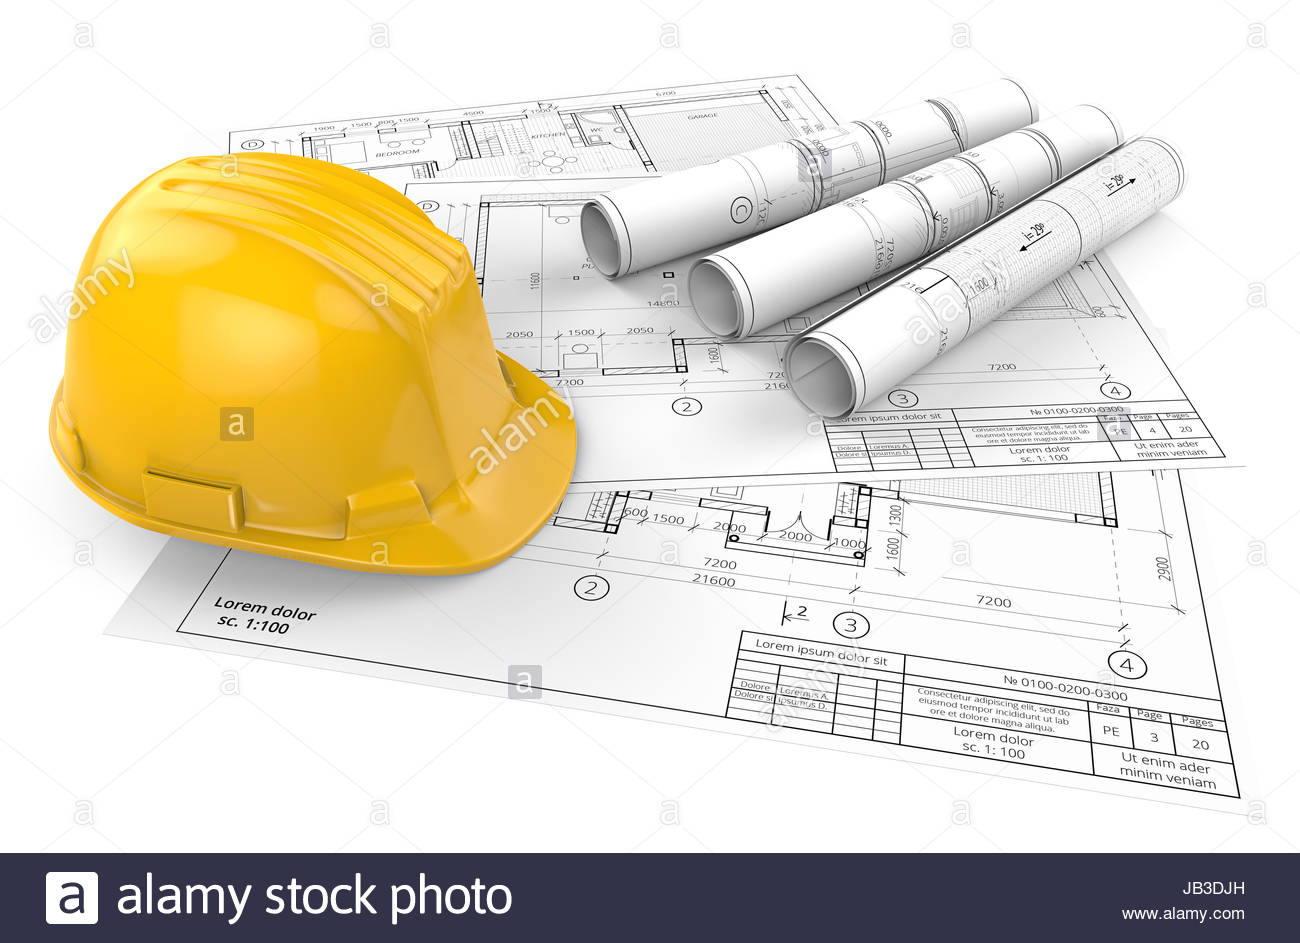 1300x943 Yellow Hardhat On Top Of Generic Architectural Blueprints